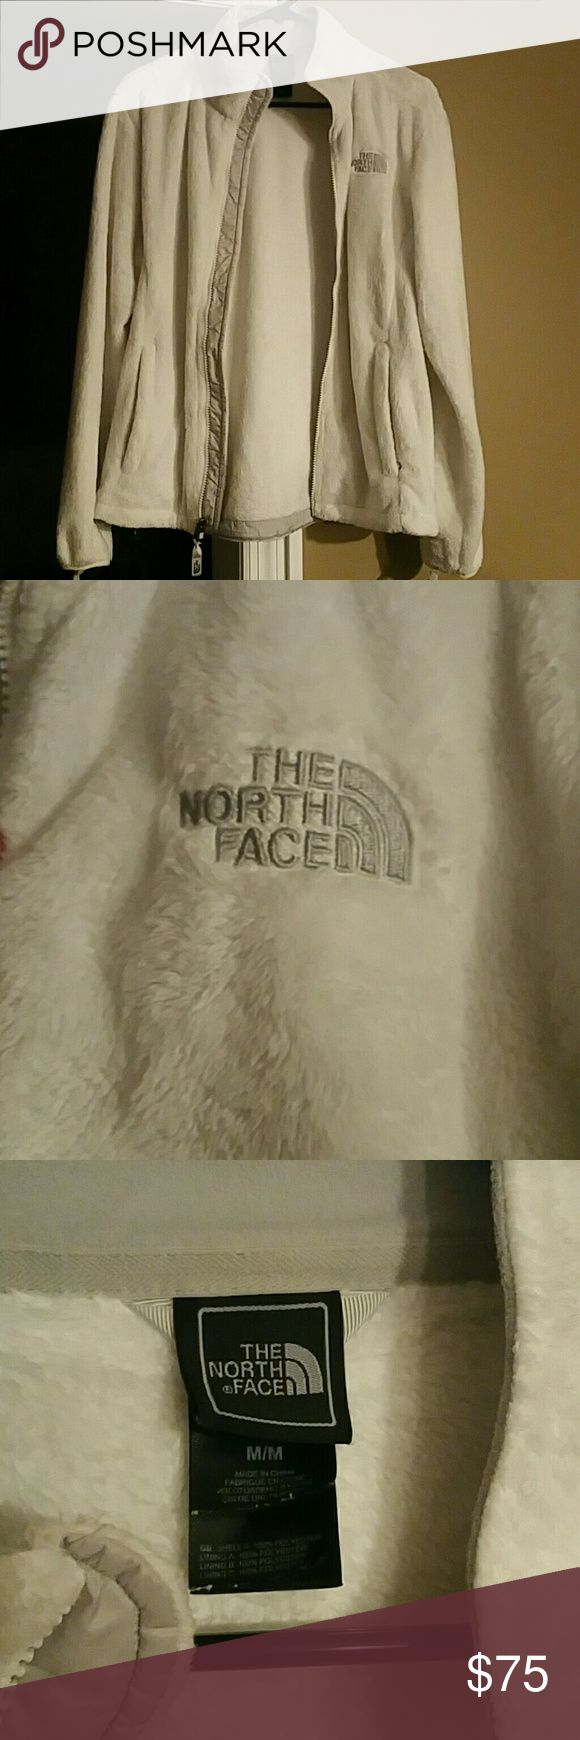 White North Face Jacket Size M White fuzzy north face jacket barely worn and in great condition! No holes or stains! Smoke free home Retails $99.00 plus tax North Face Jackets & Coats